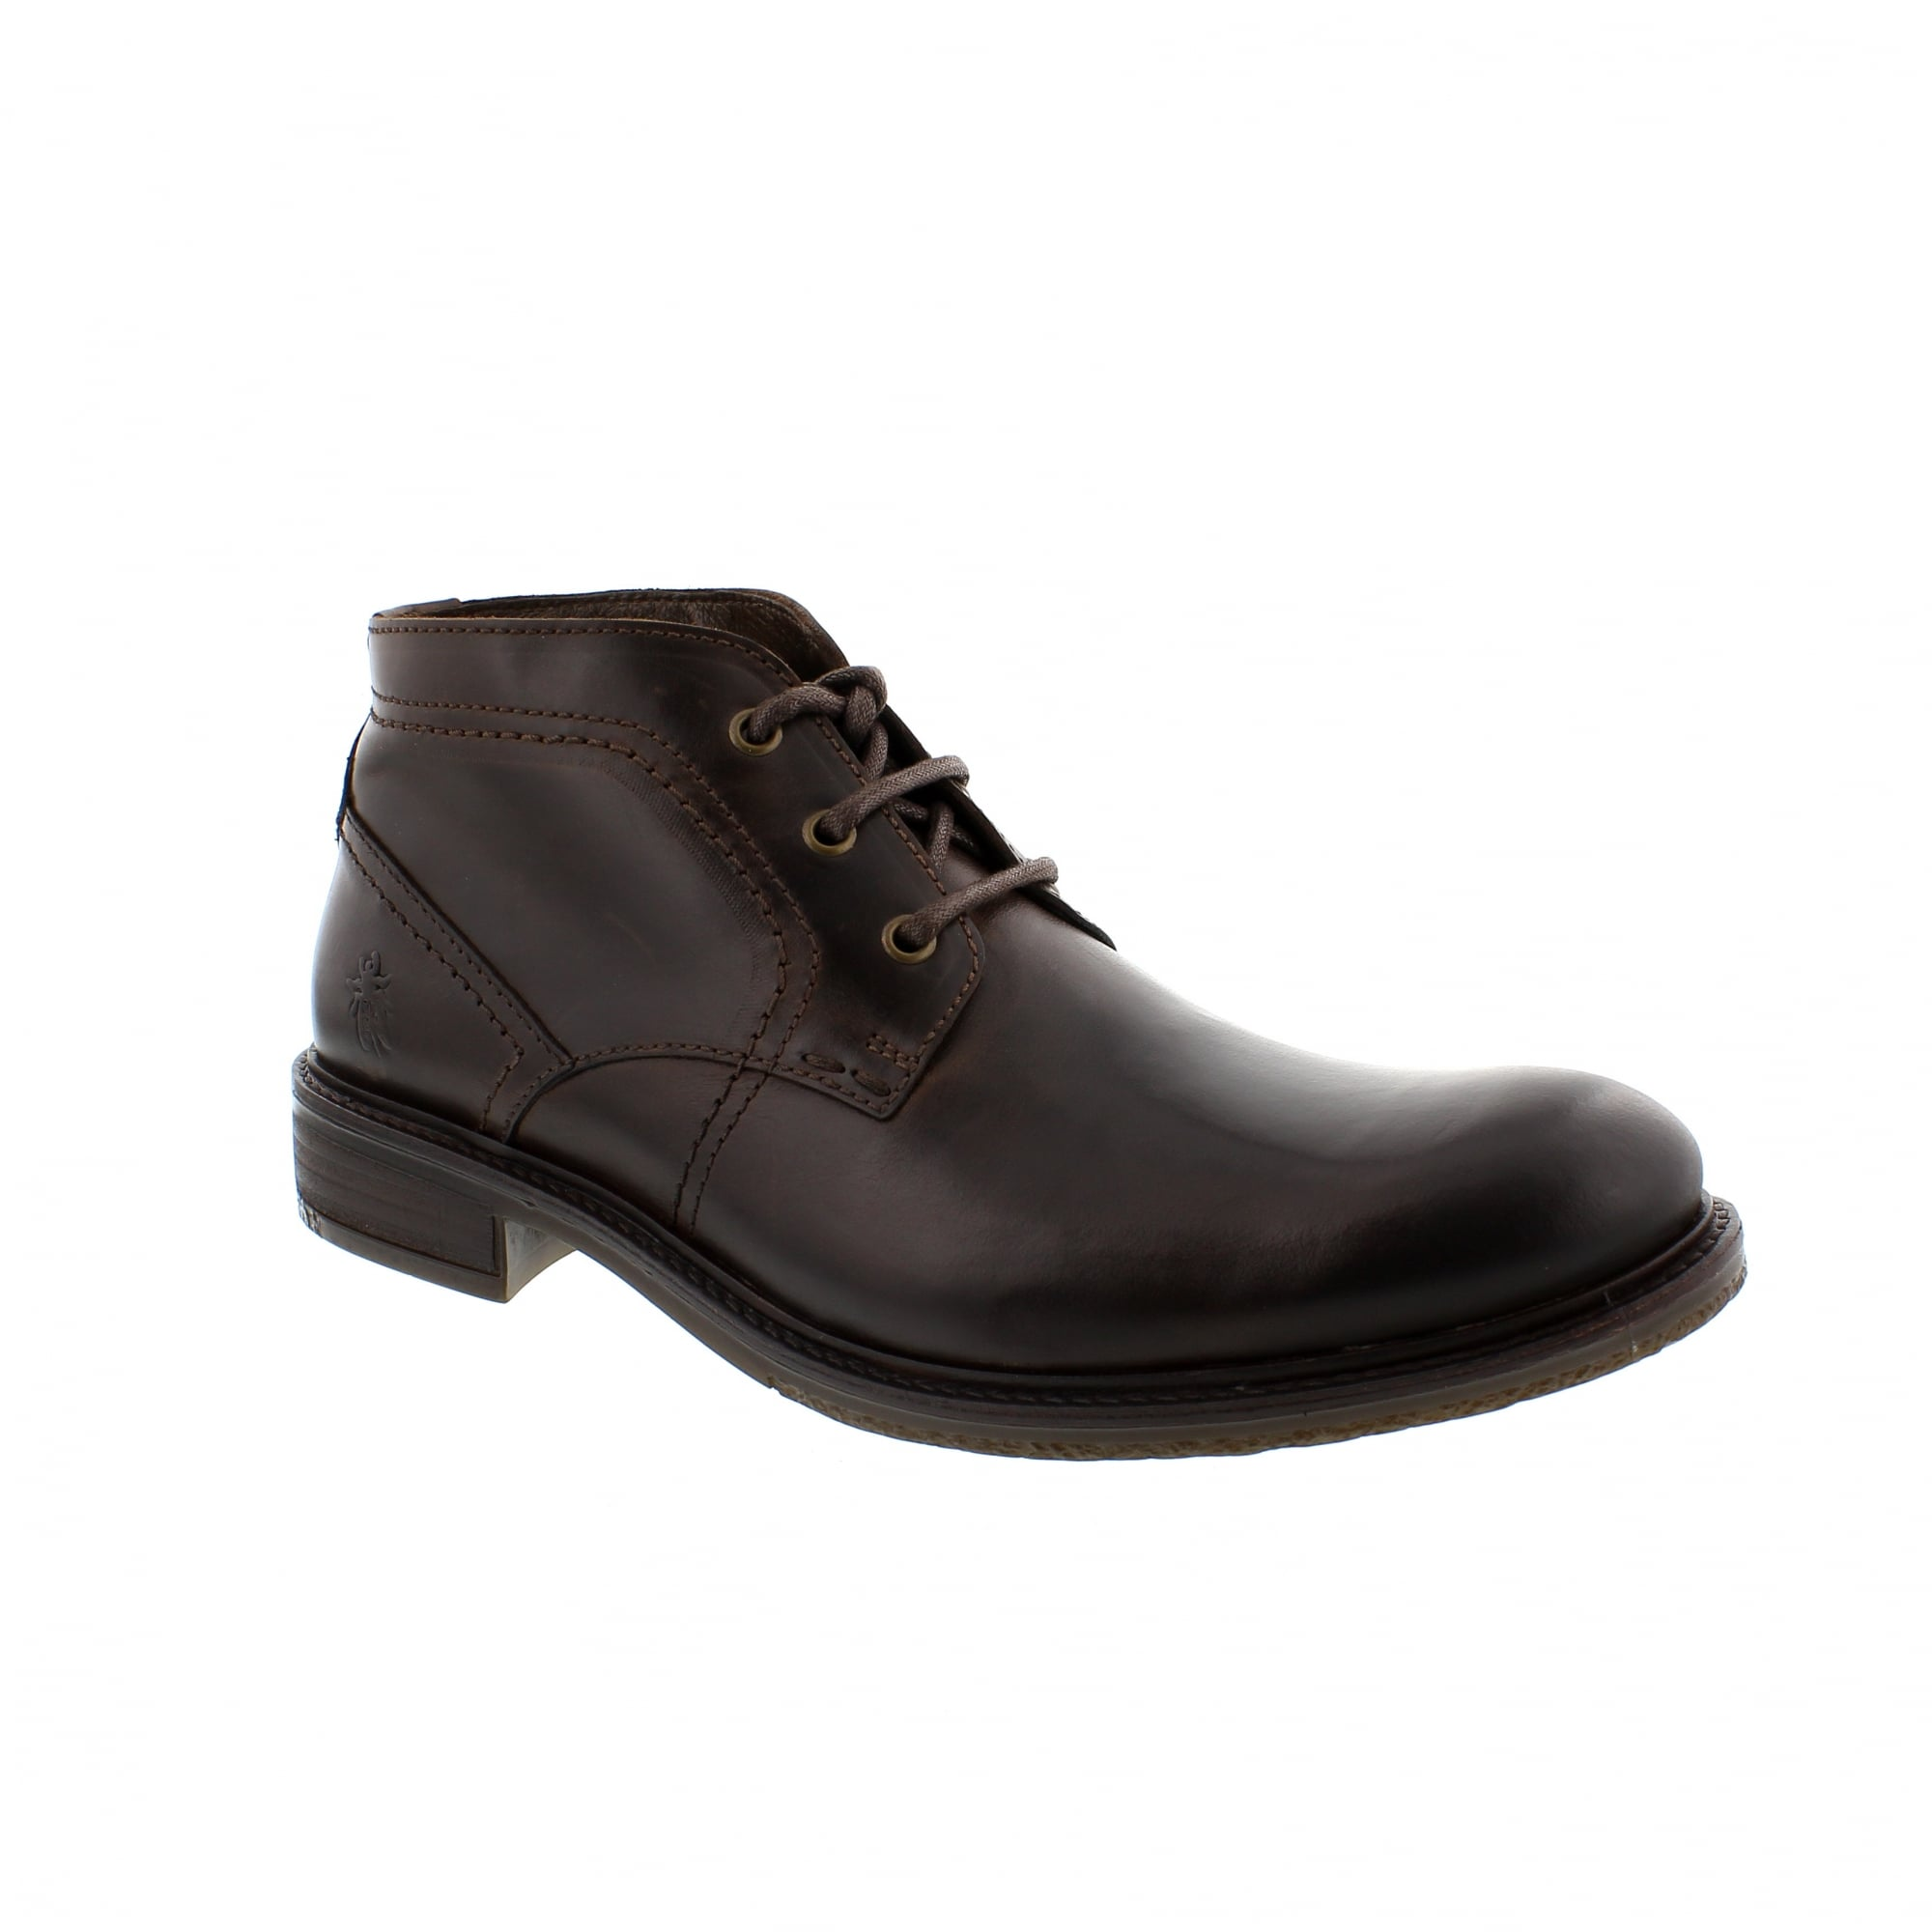 f386635aaf2 Fly London Urie 144074-001 Mens Ankle Boots